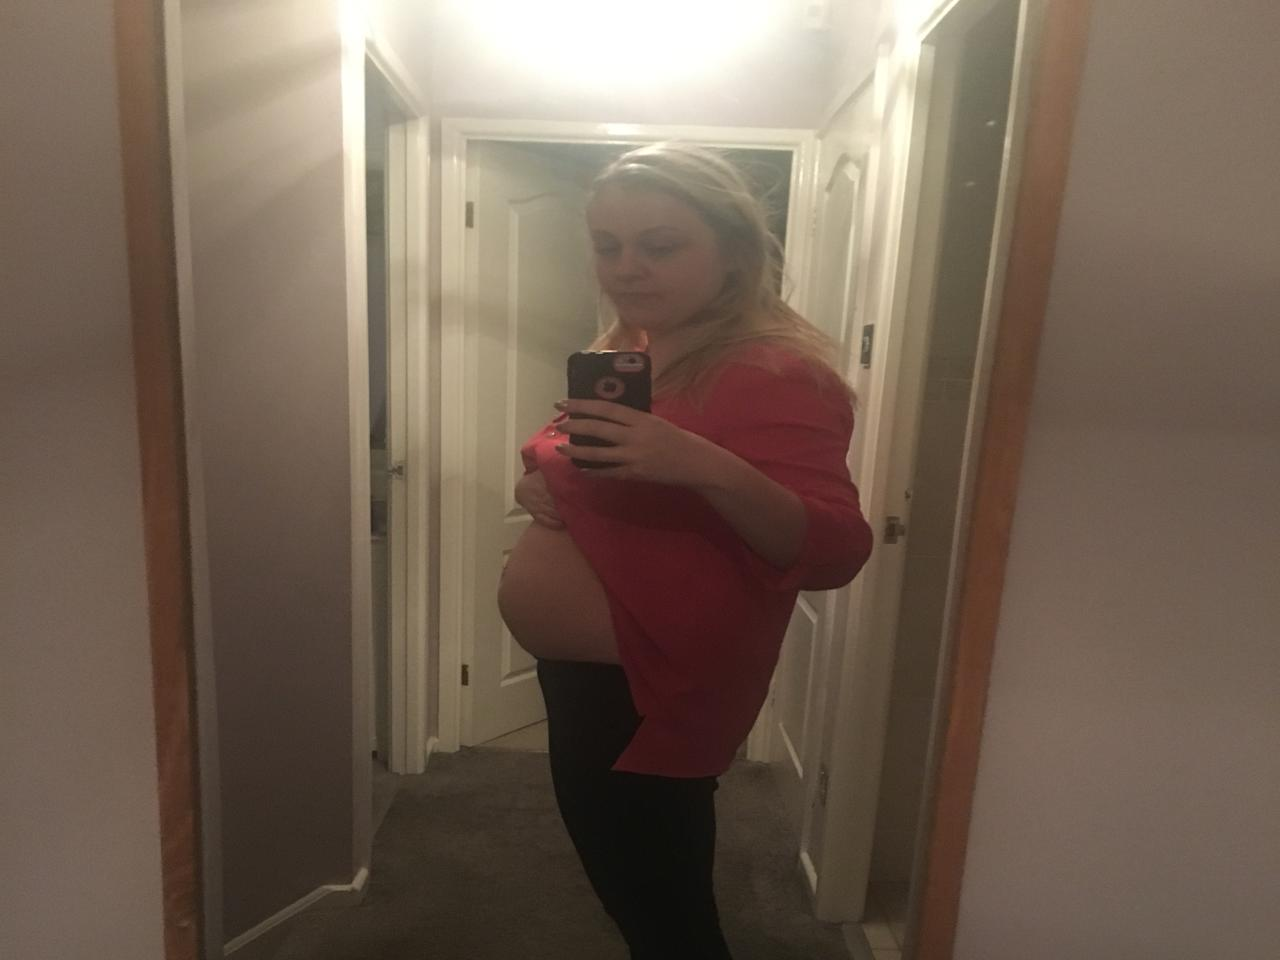 A personal image that shows the bloating she endured